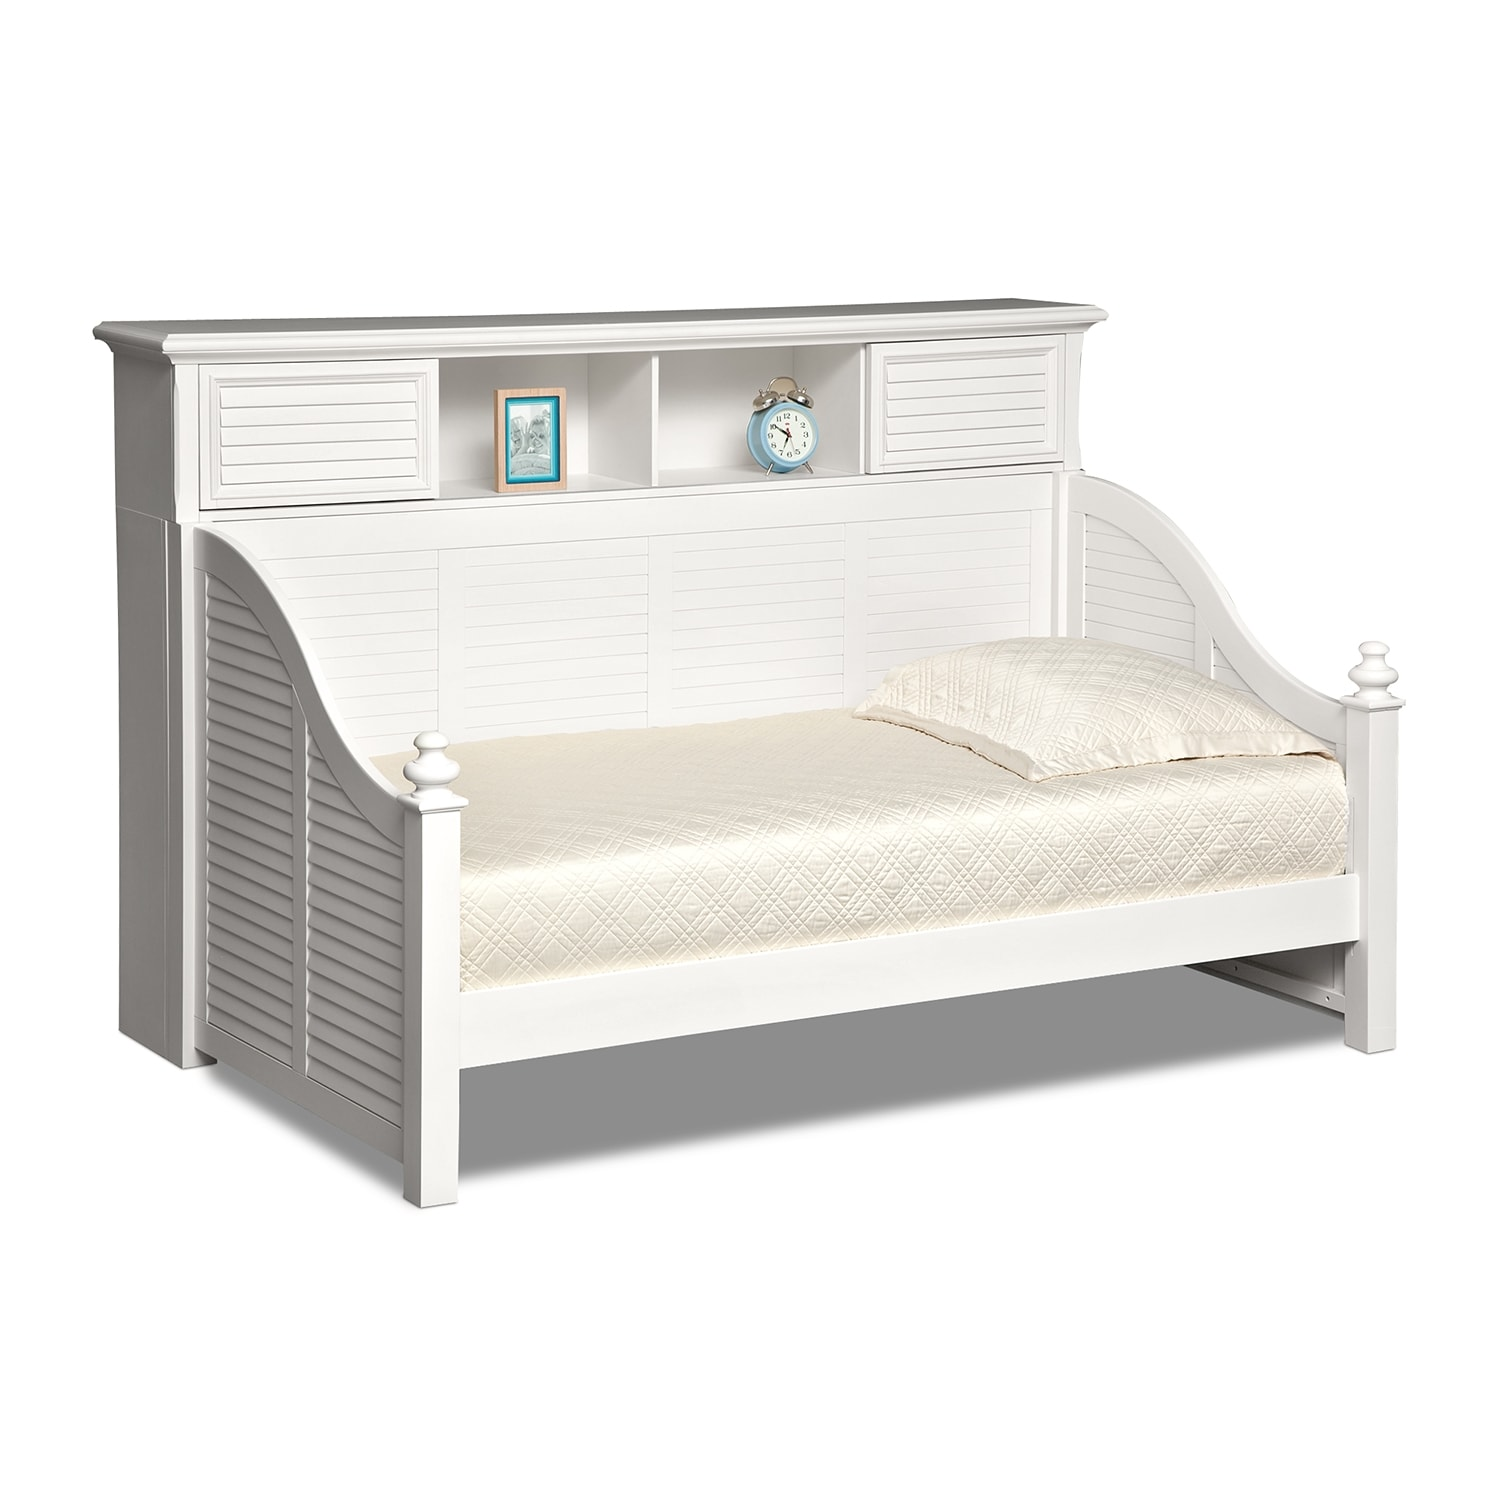 Kids Furniture - Mayflower II White Bookcase Daybed